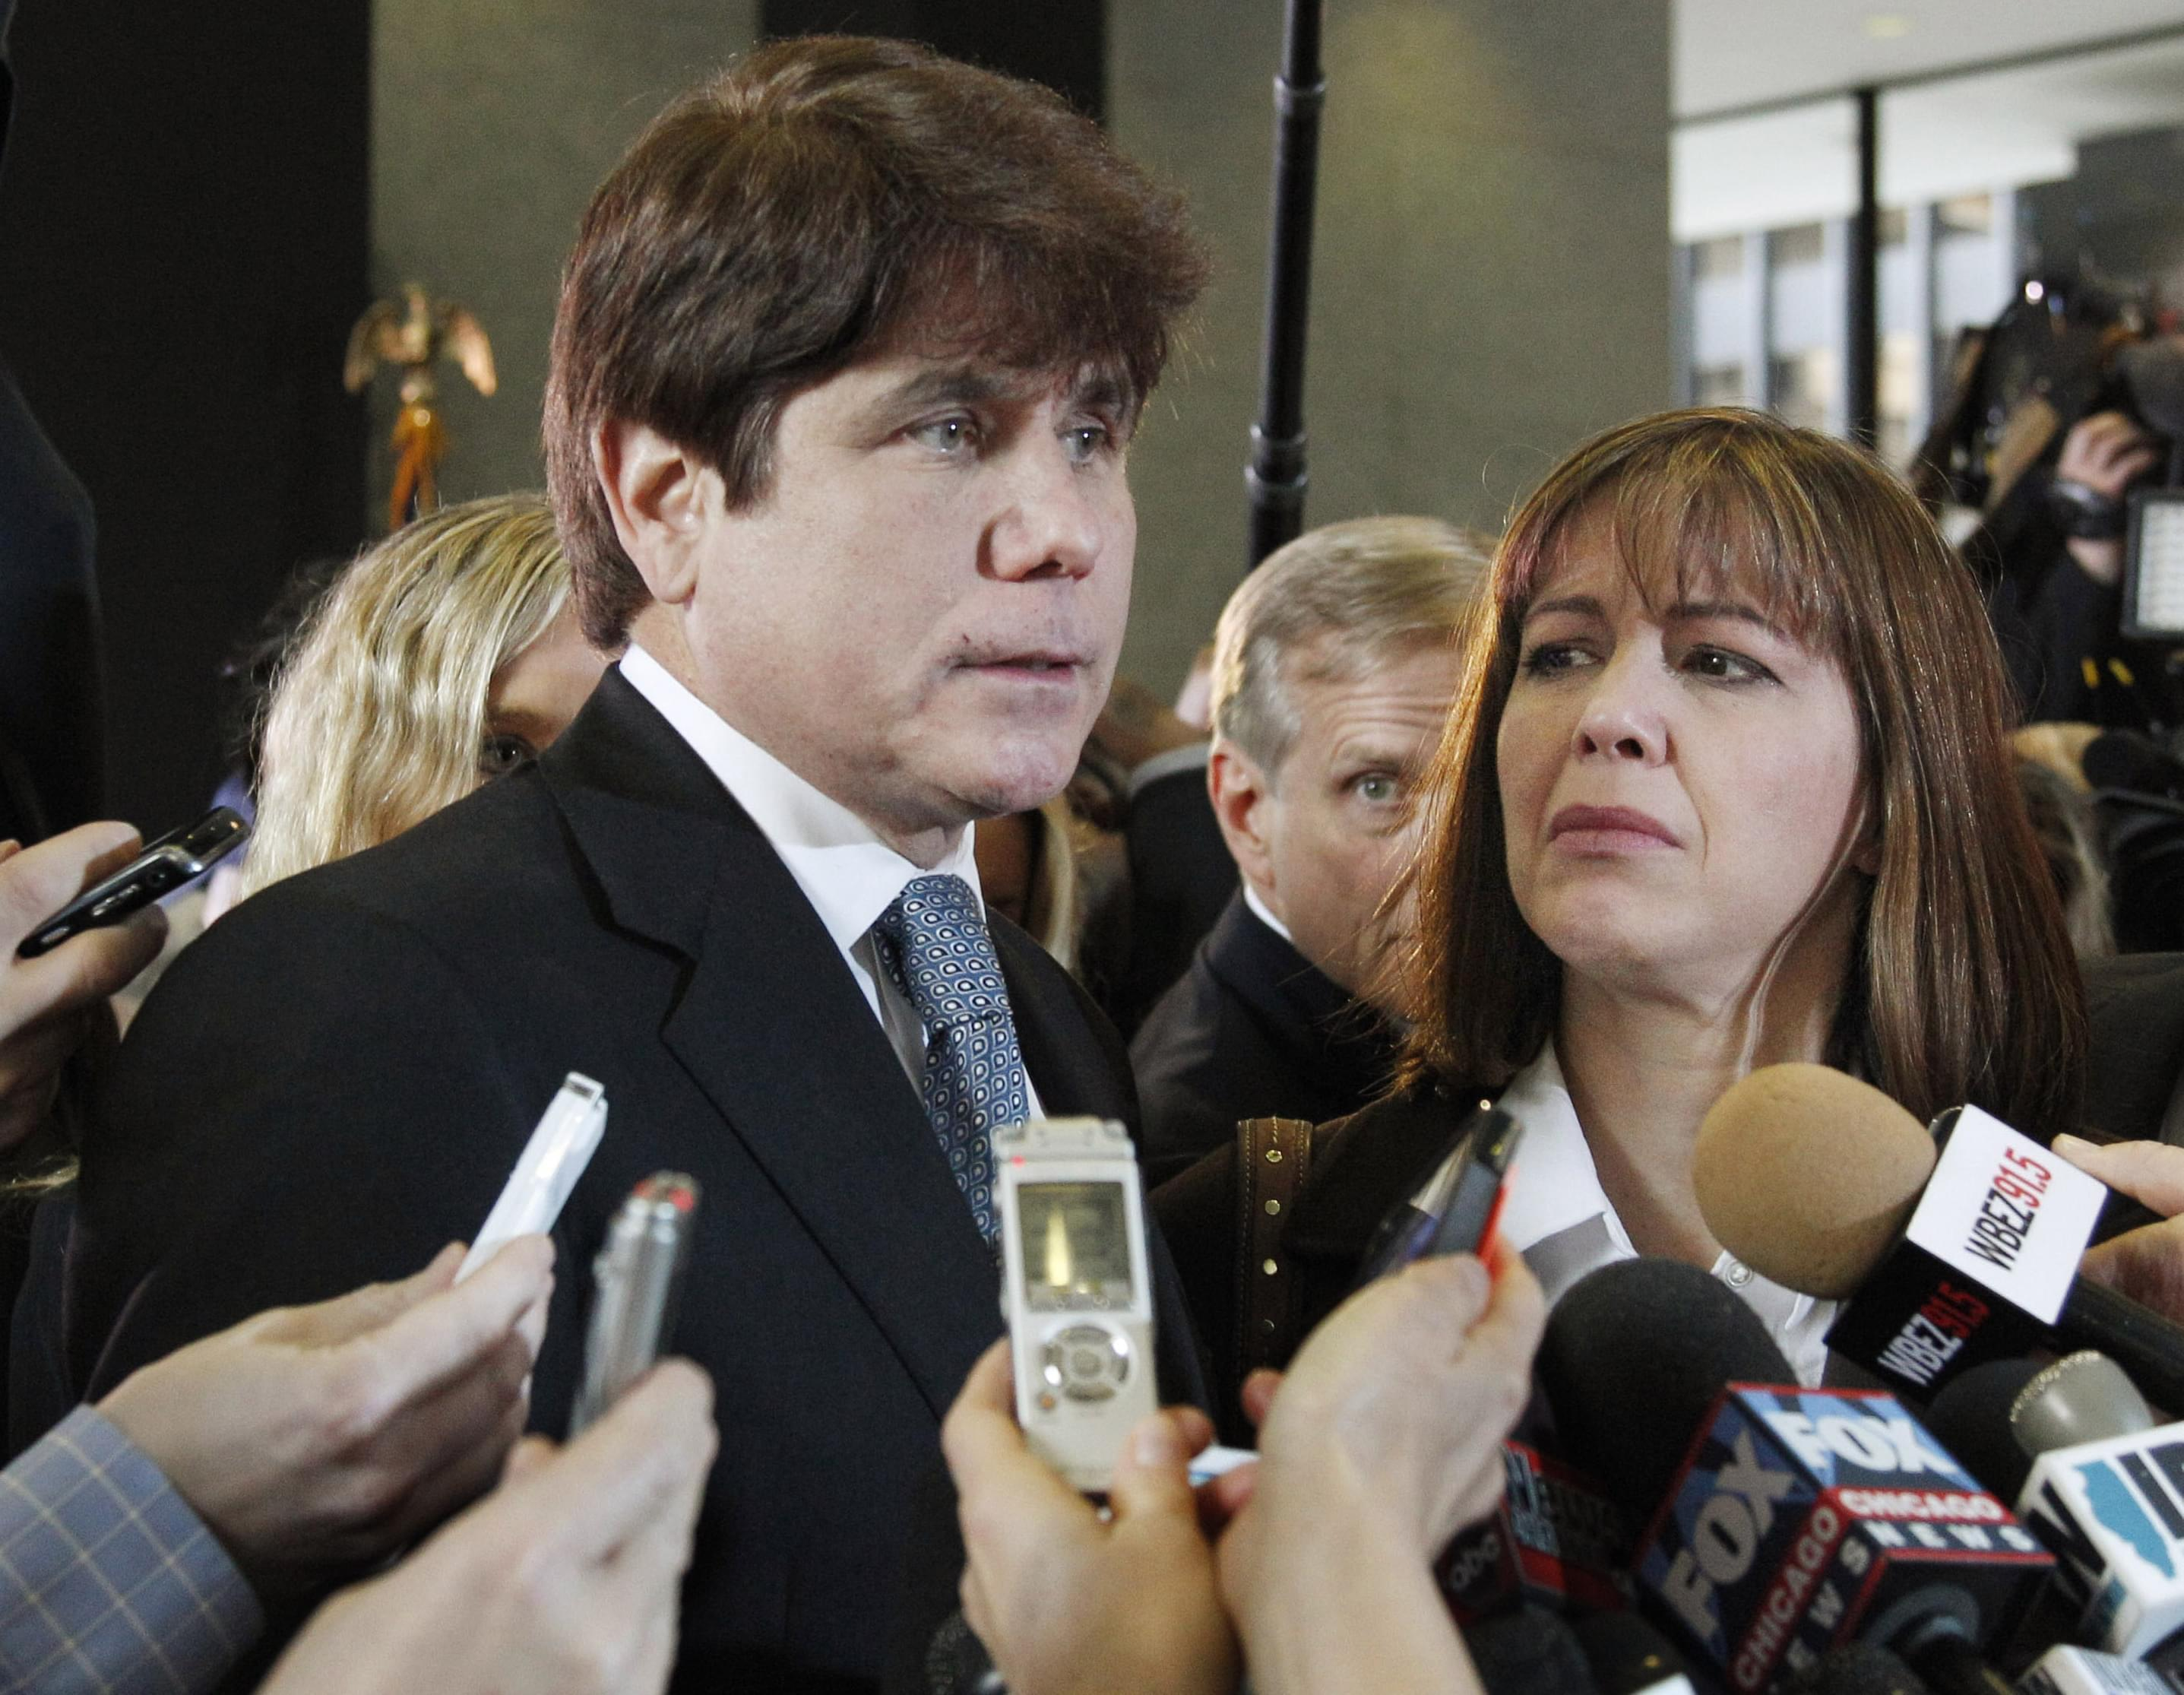 In this Dec. 7, 2011 file photo, former Illinois Gov. Rod Blagojevich, left, speaks to reporters as his wife, Patti, listens at the federal building in Chicago, after Blagojevich was sentenced to 14 years on 18 corruption counts.